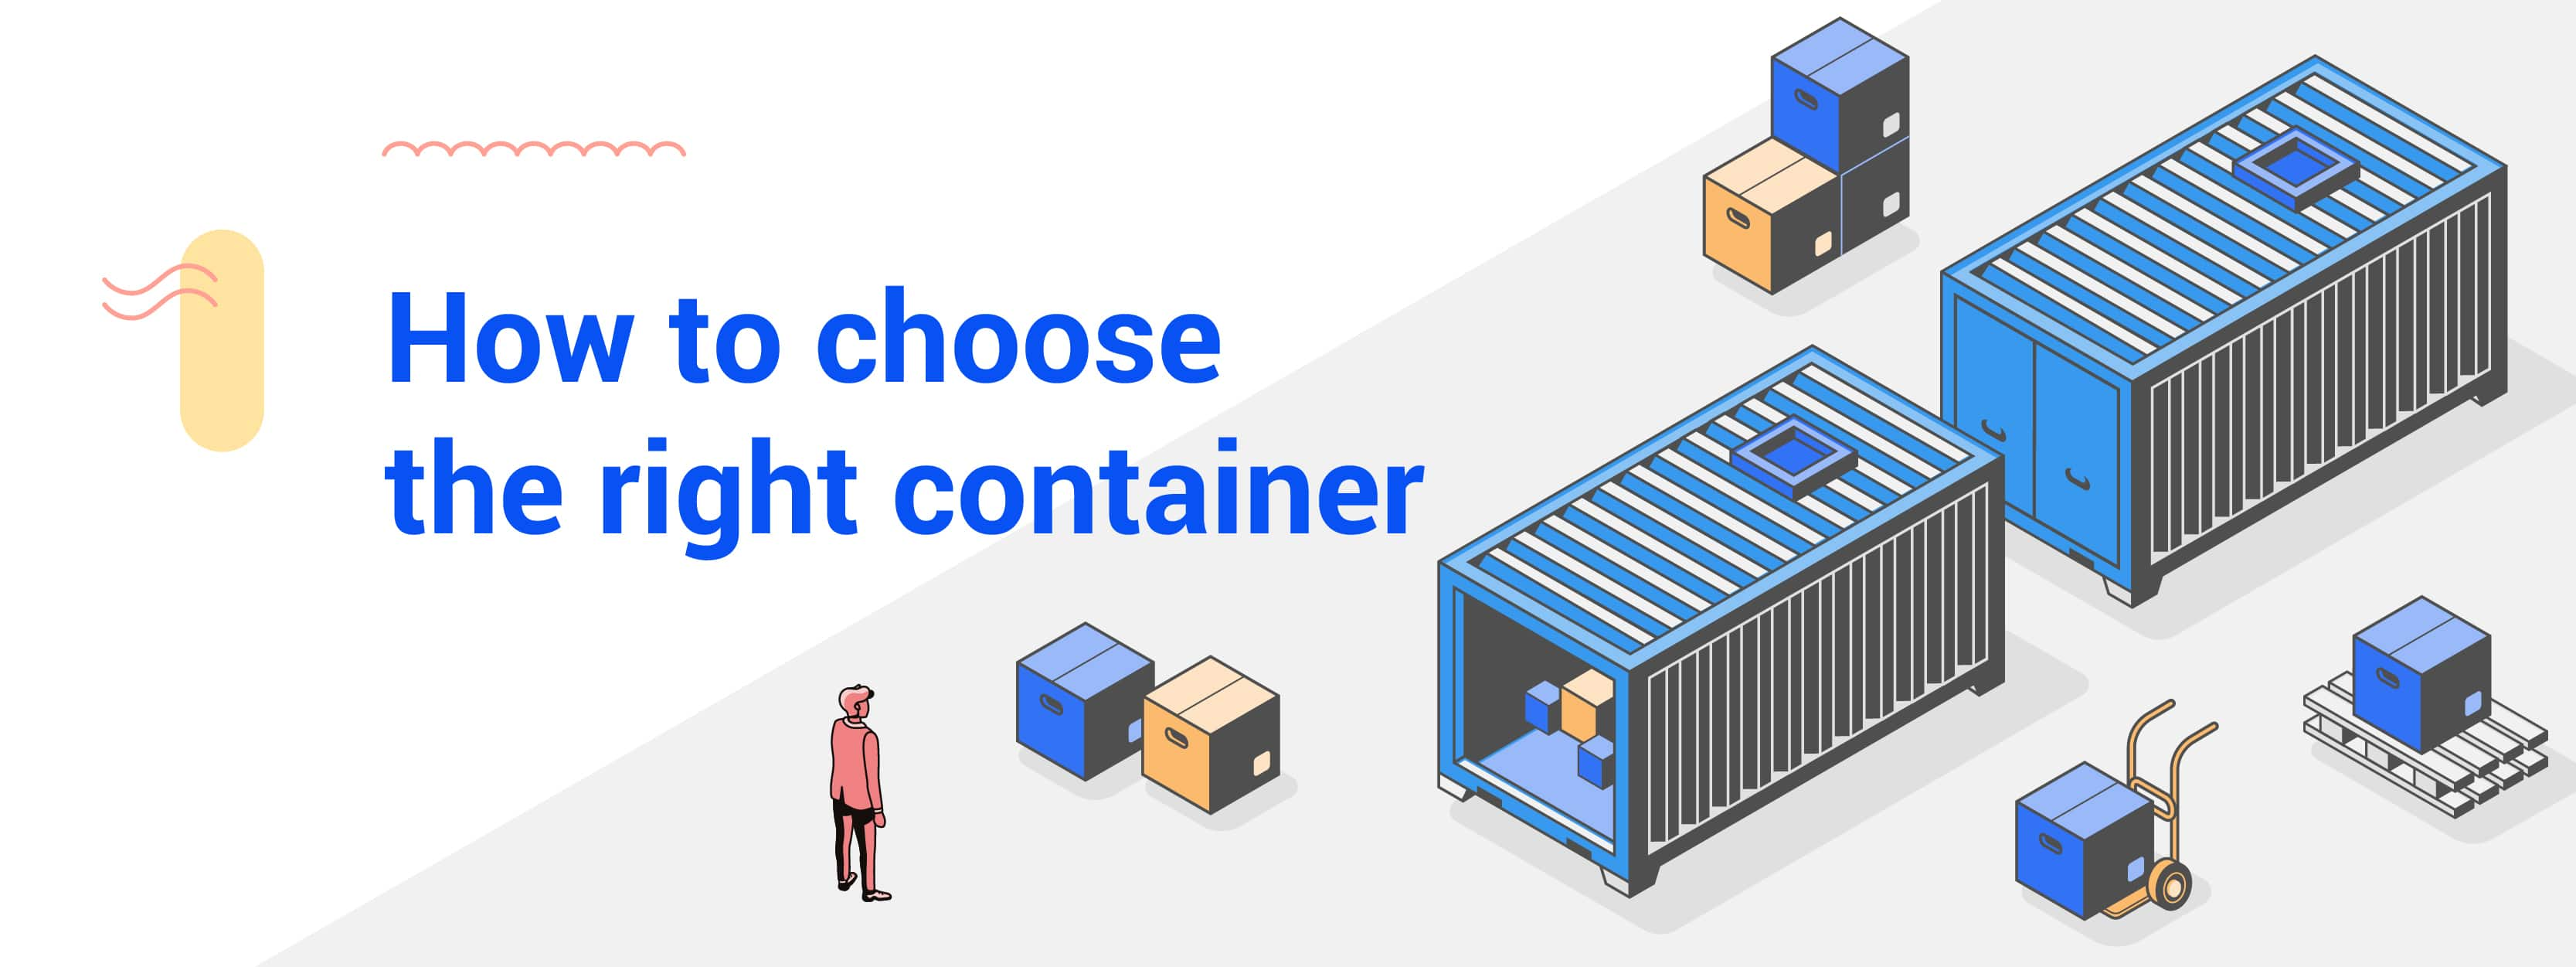 Exporting by Ship? Here's How to Find the Right Container